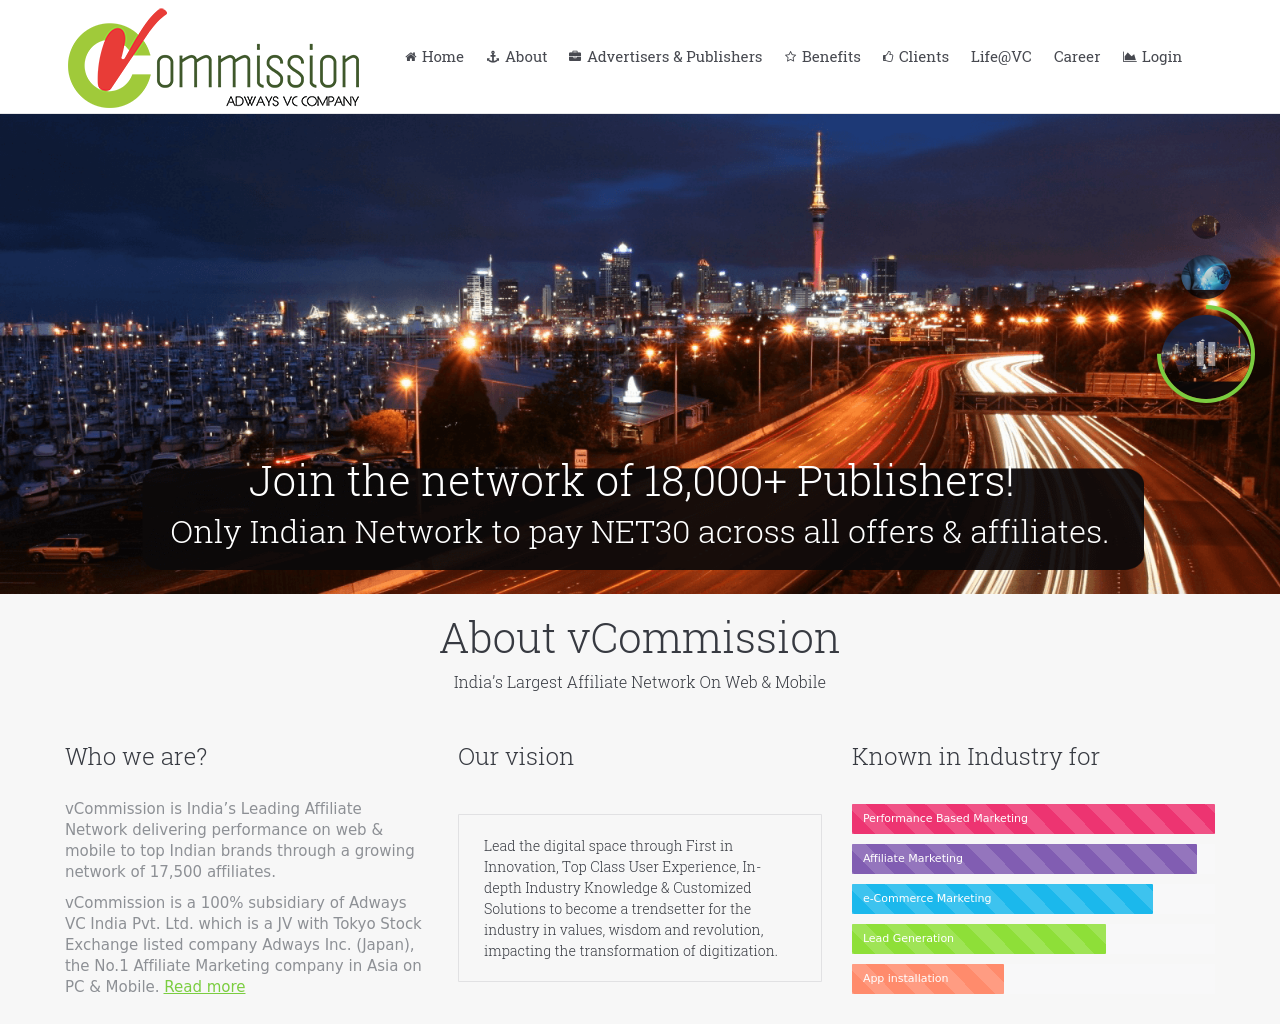 vCommission-Media-Private-Limited-Advertising-Reviews-Pricing